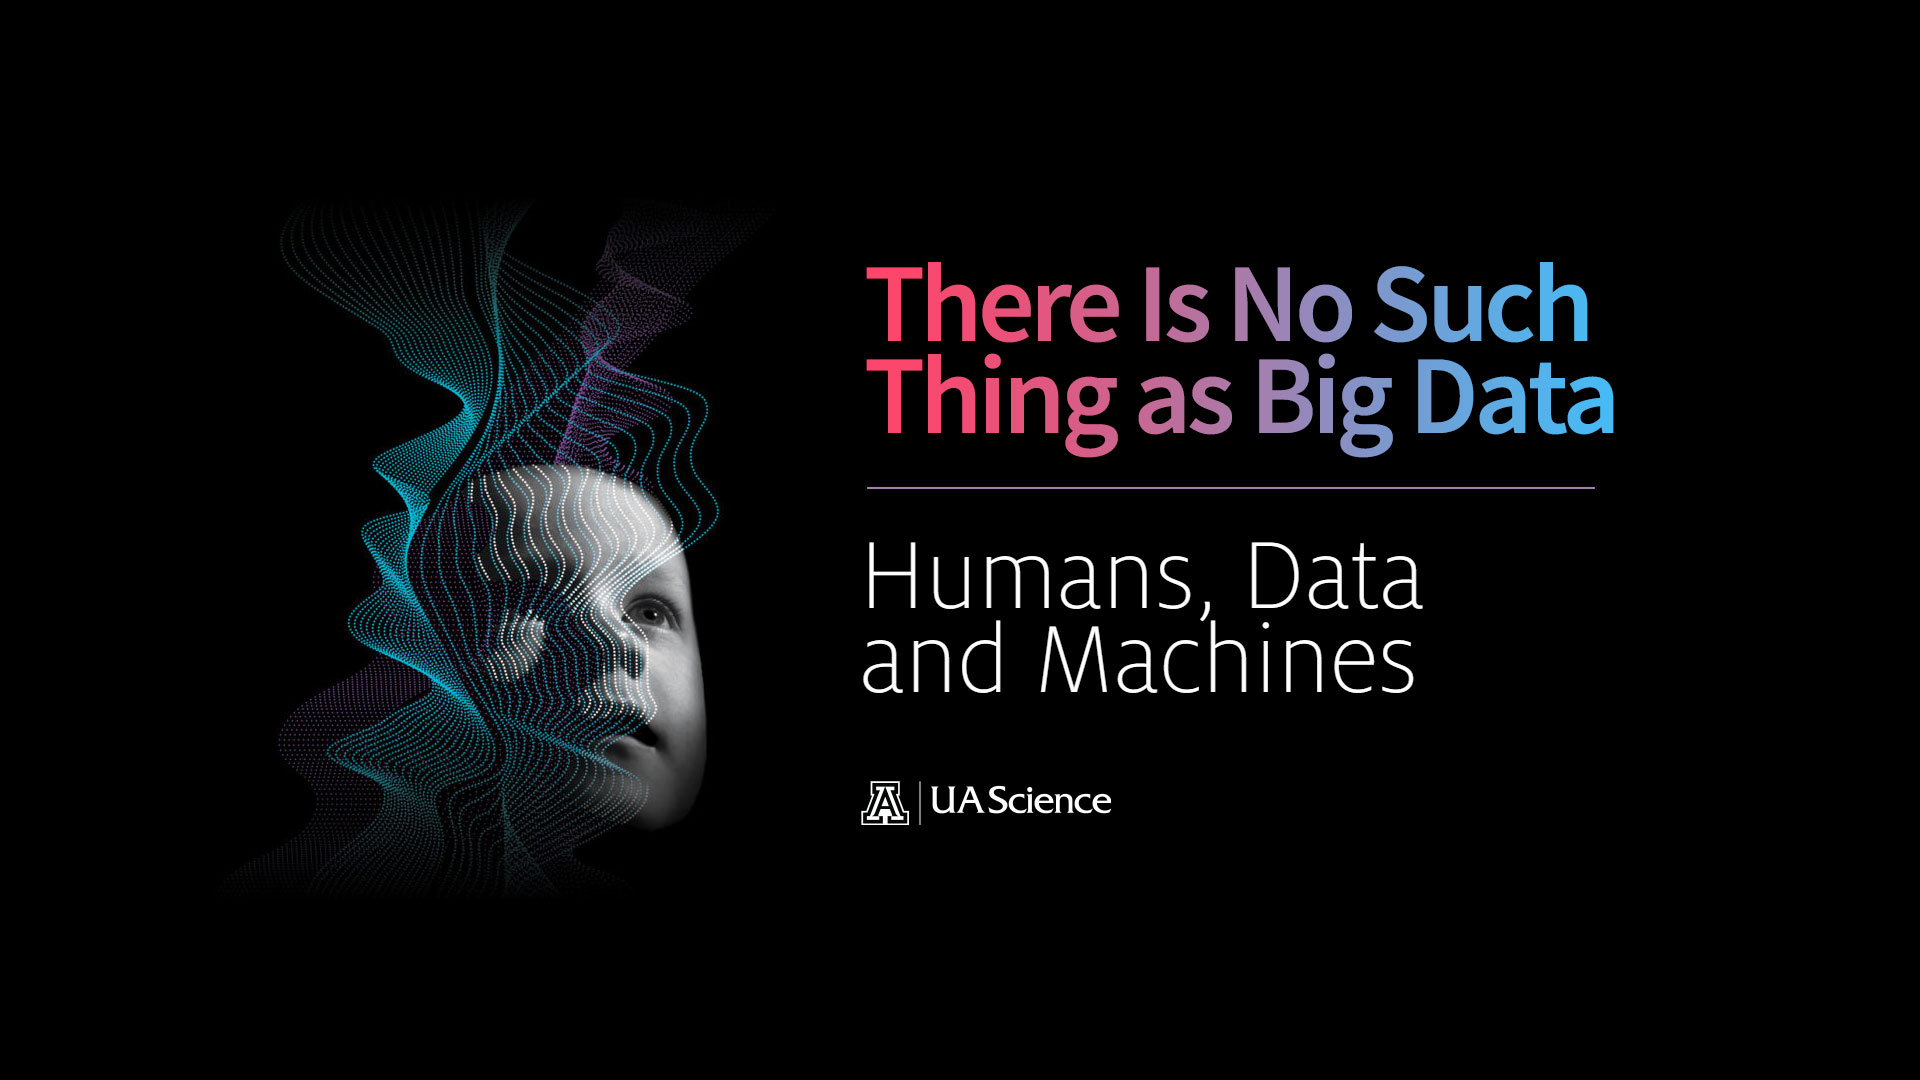 UA Science Lecture Series 6: There Is No Such Thing as Big Data